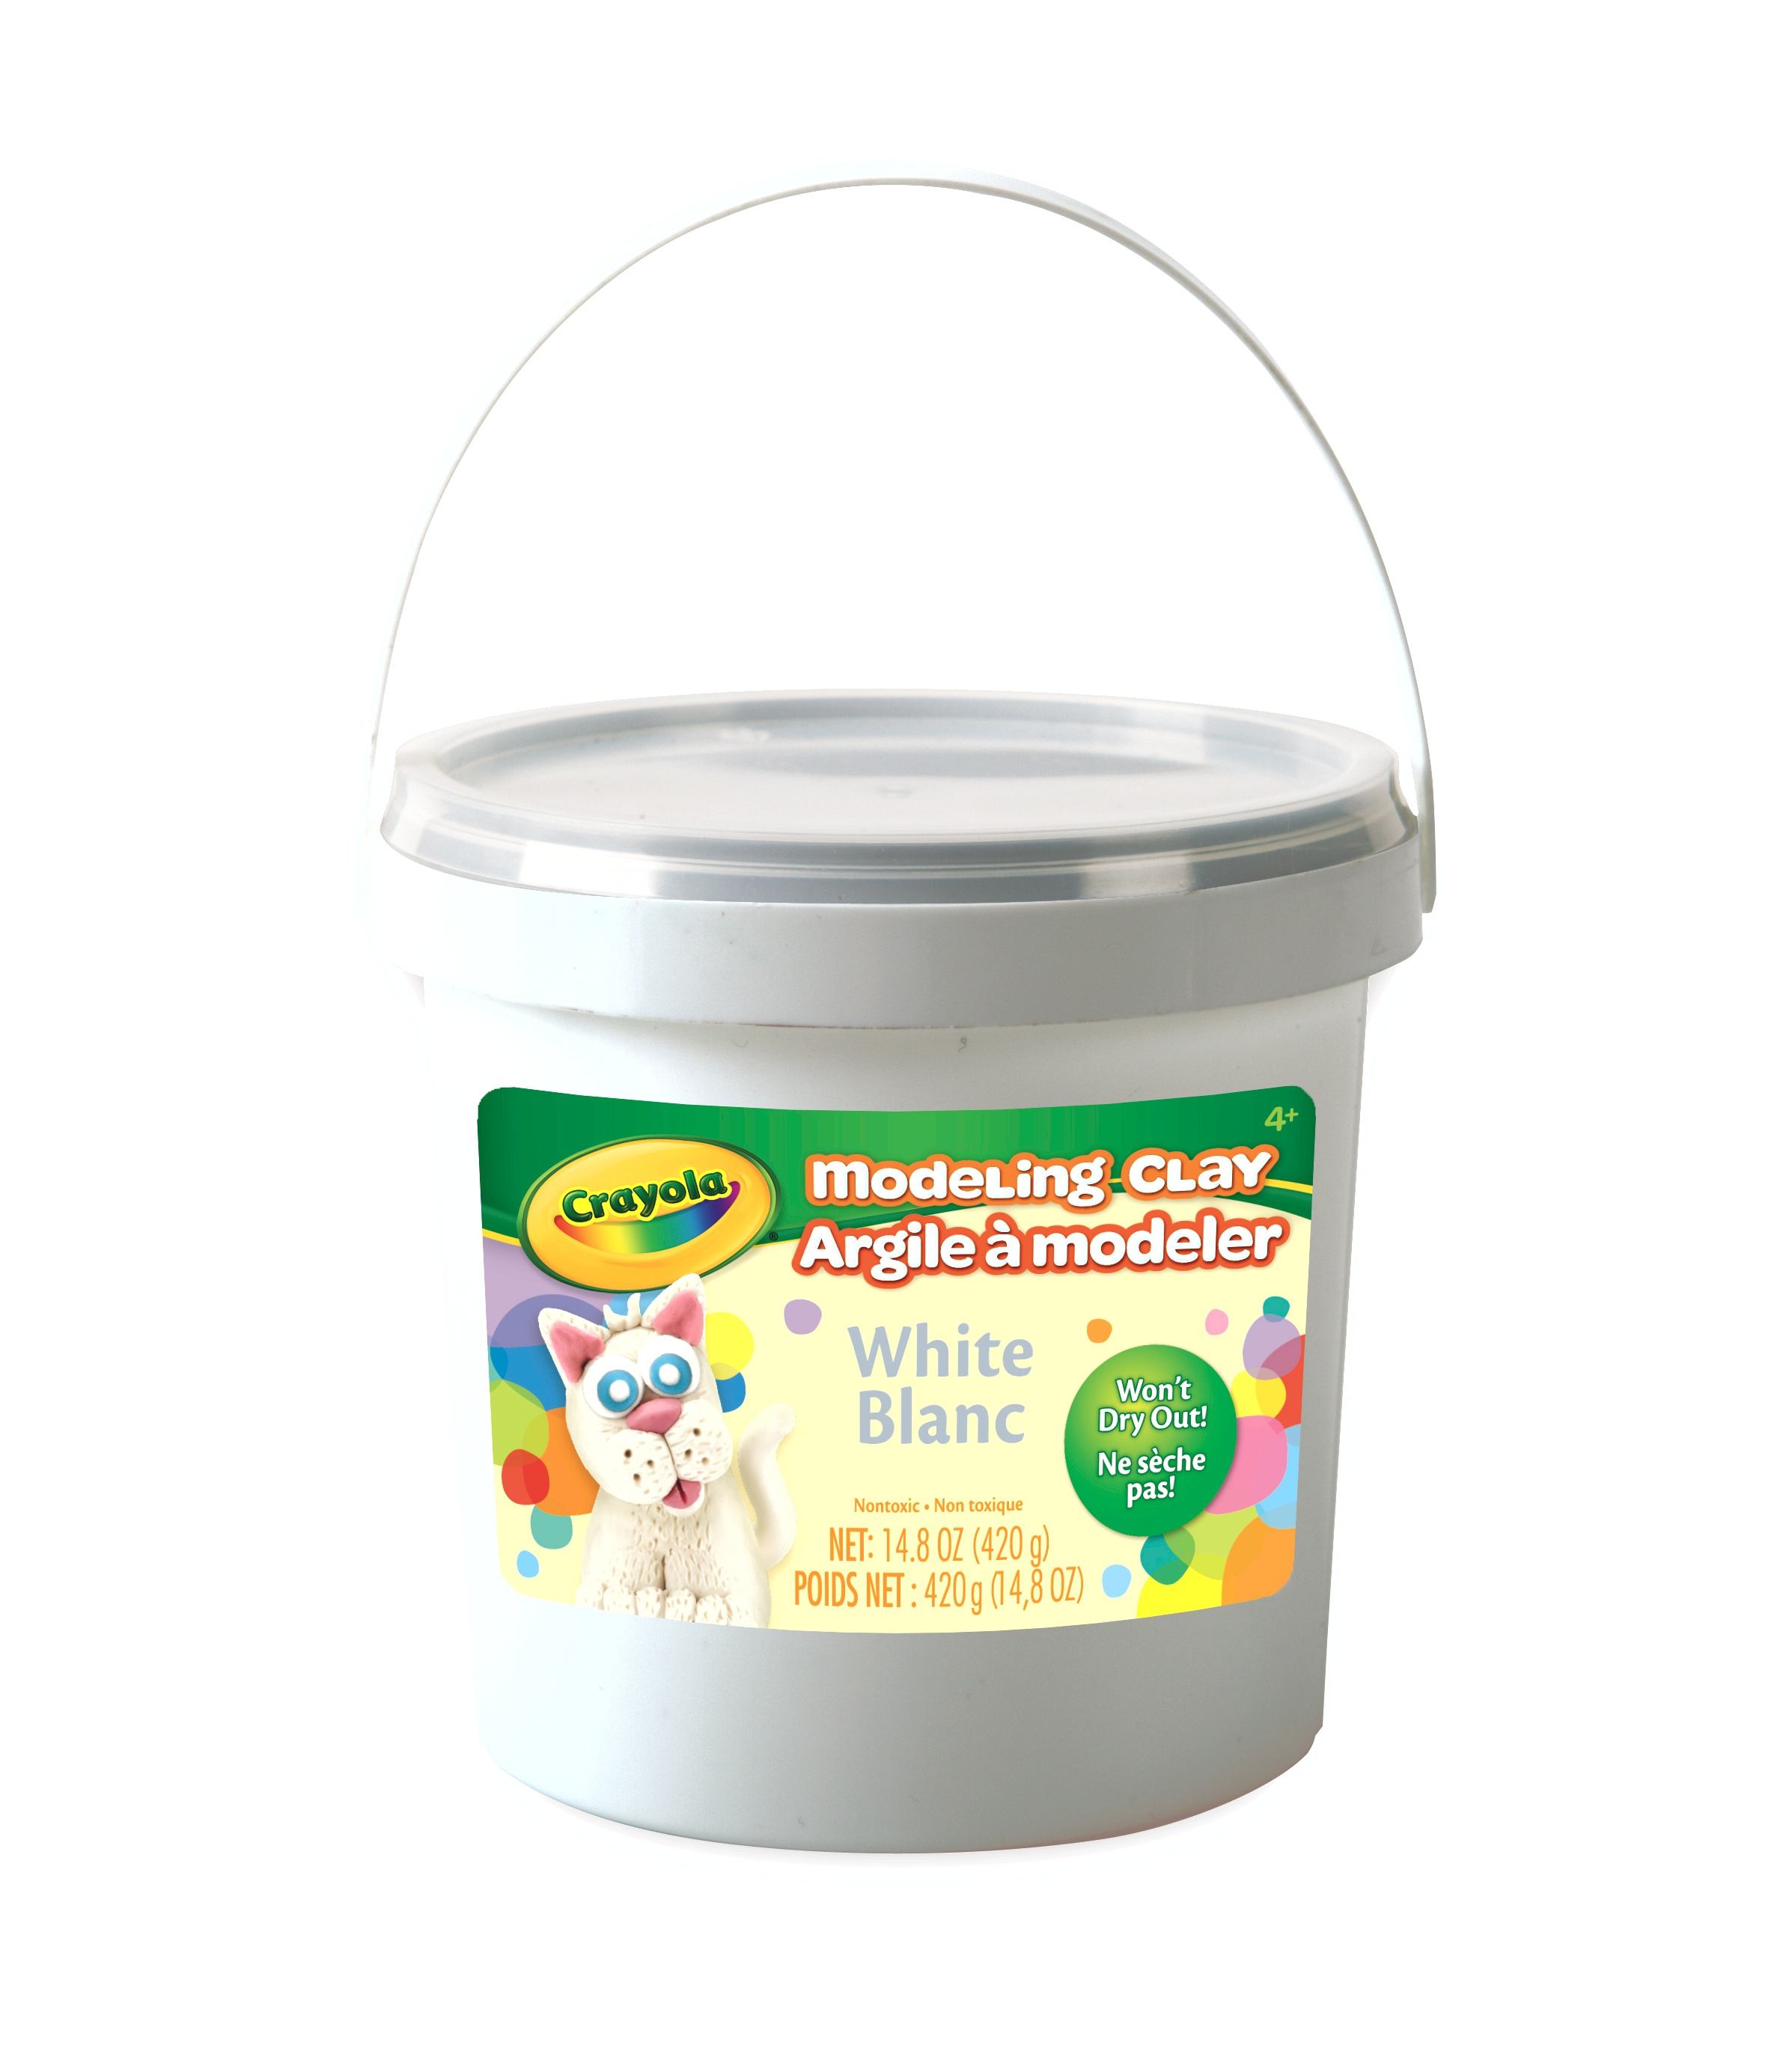 Crayola White Modeling Clay Bucket, Modeling Clay for Kids, 15 Ounces by Crayola